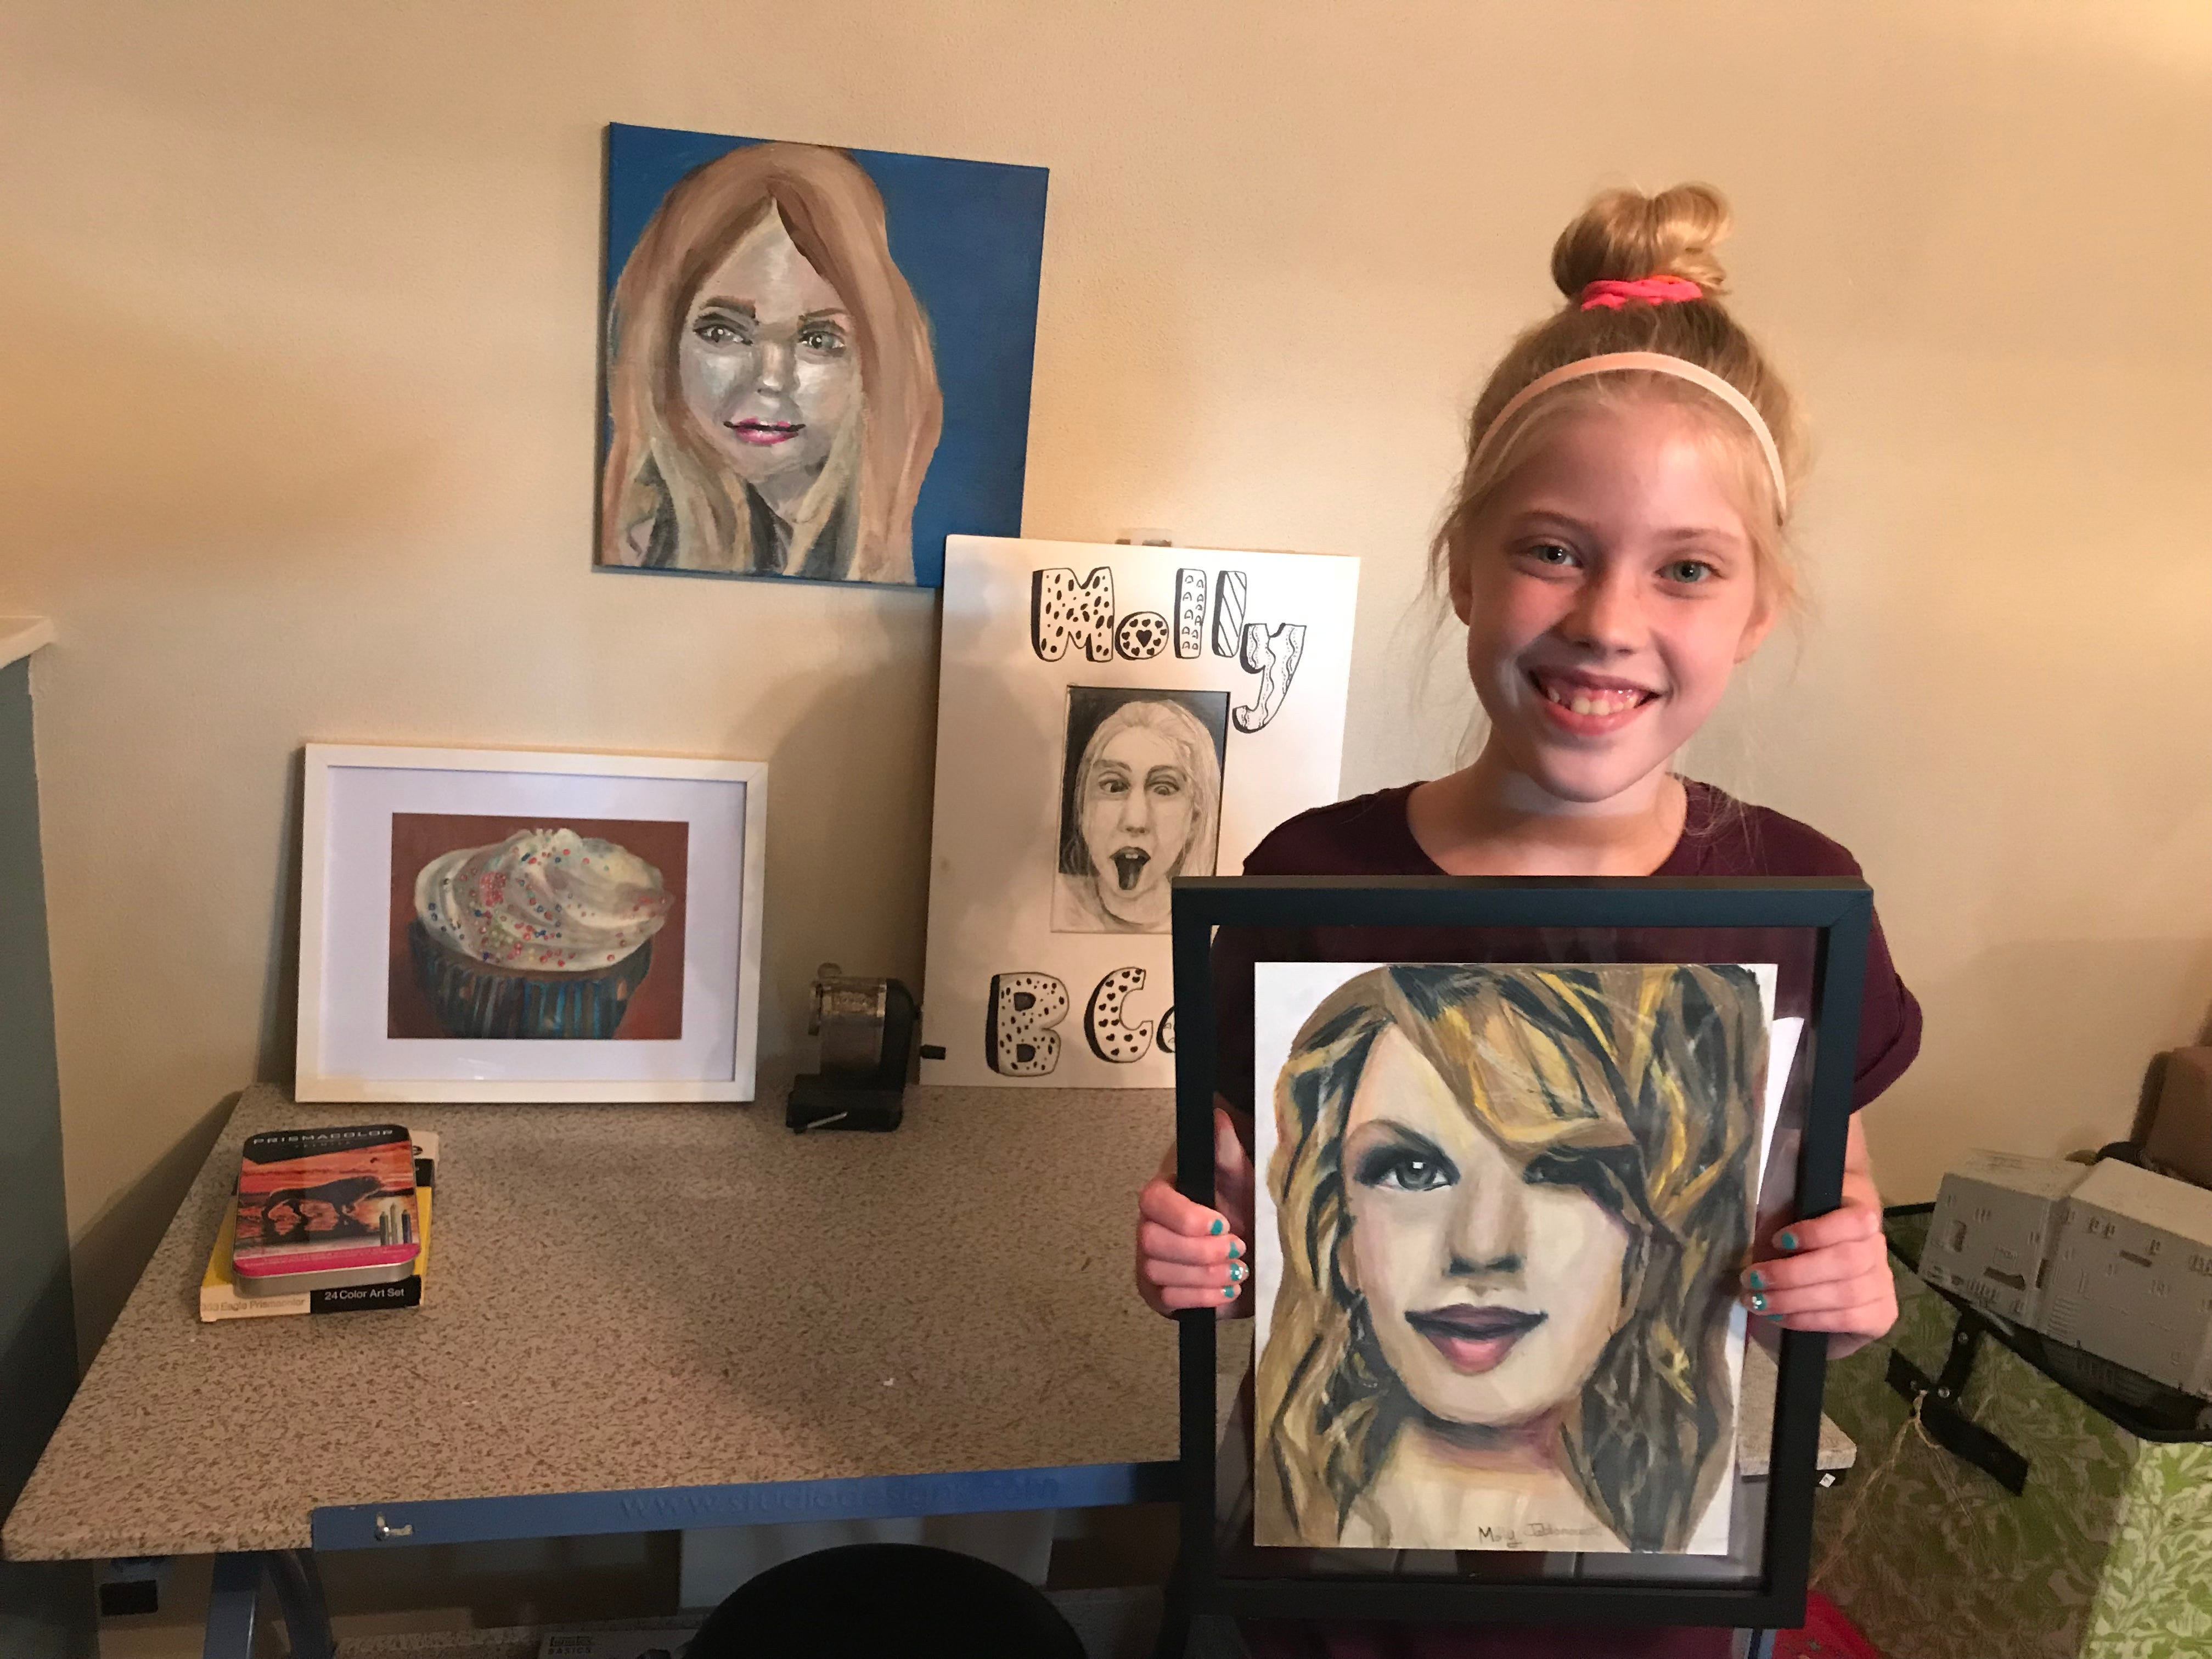 Johnson City Central School District seventh grader Molly Jablonowski, 12, holds a portrait of Taylor Swift next to her Johnson City home.